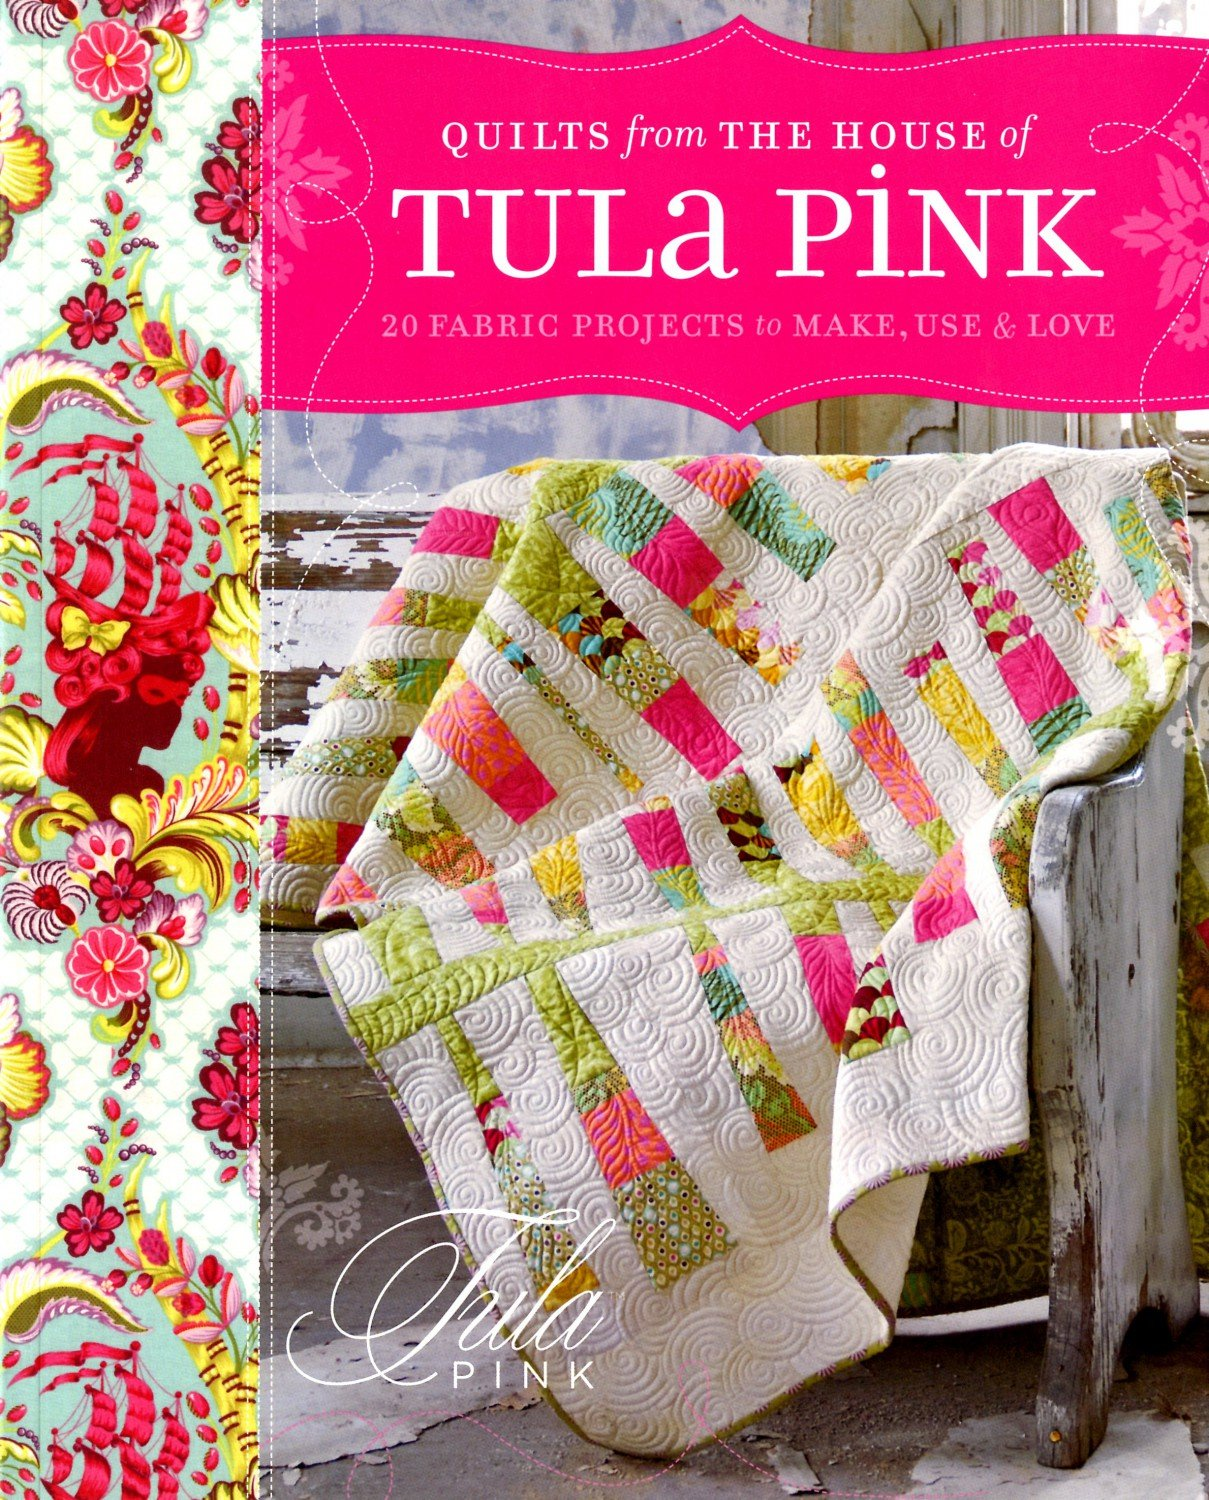 Quilts From the House of Tula Pink - W1582 - MAY BE RESTOCKED UPON REQUEST